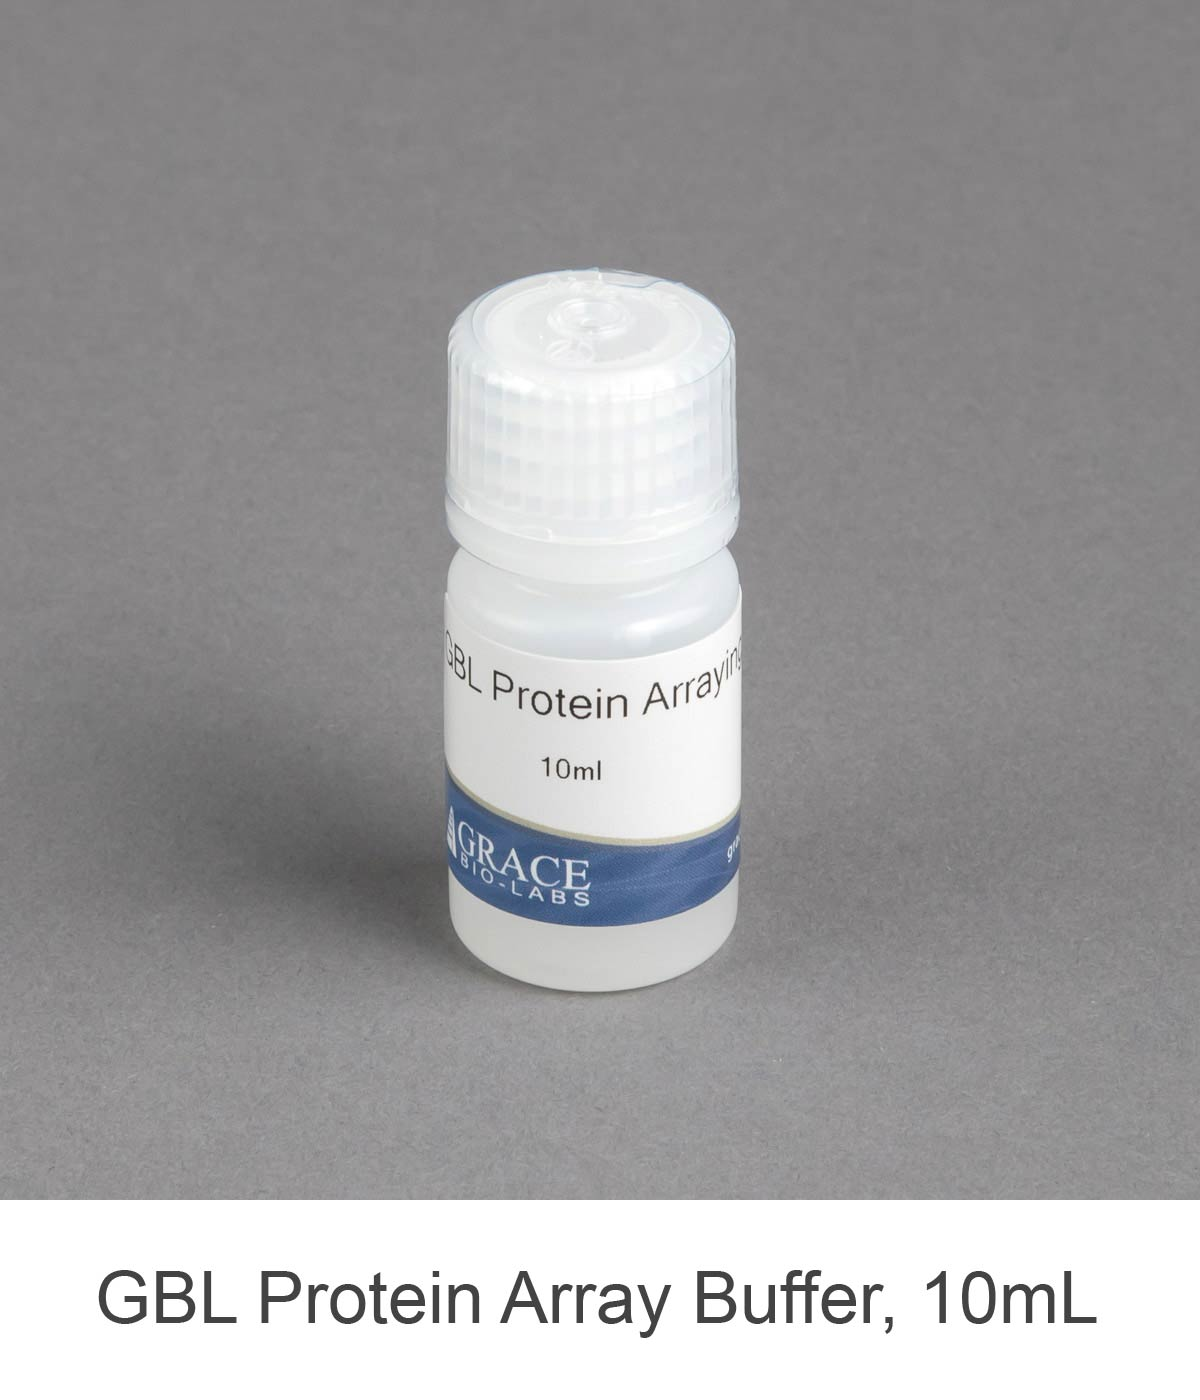 GBL Protein Array Buffer